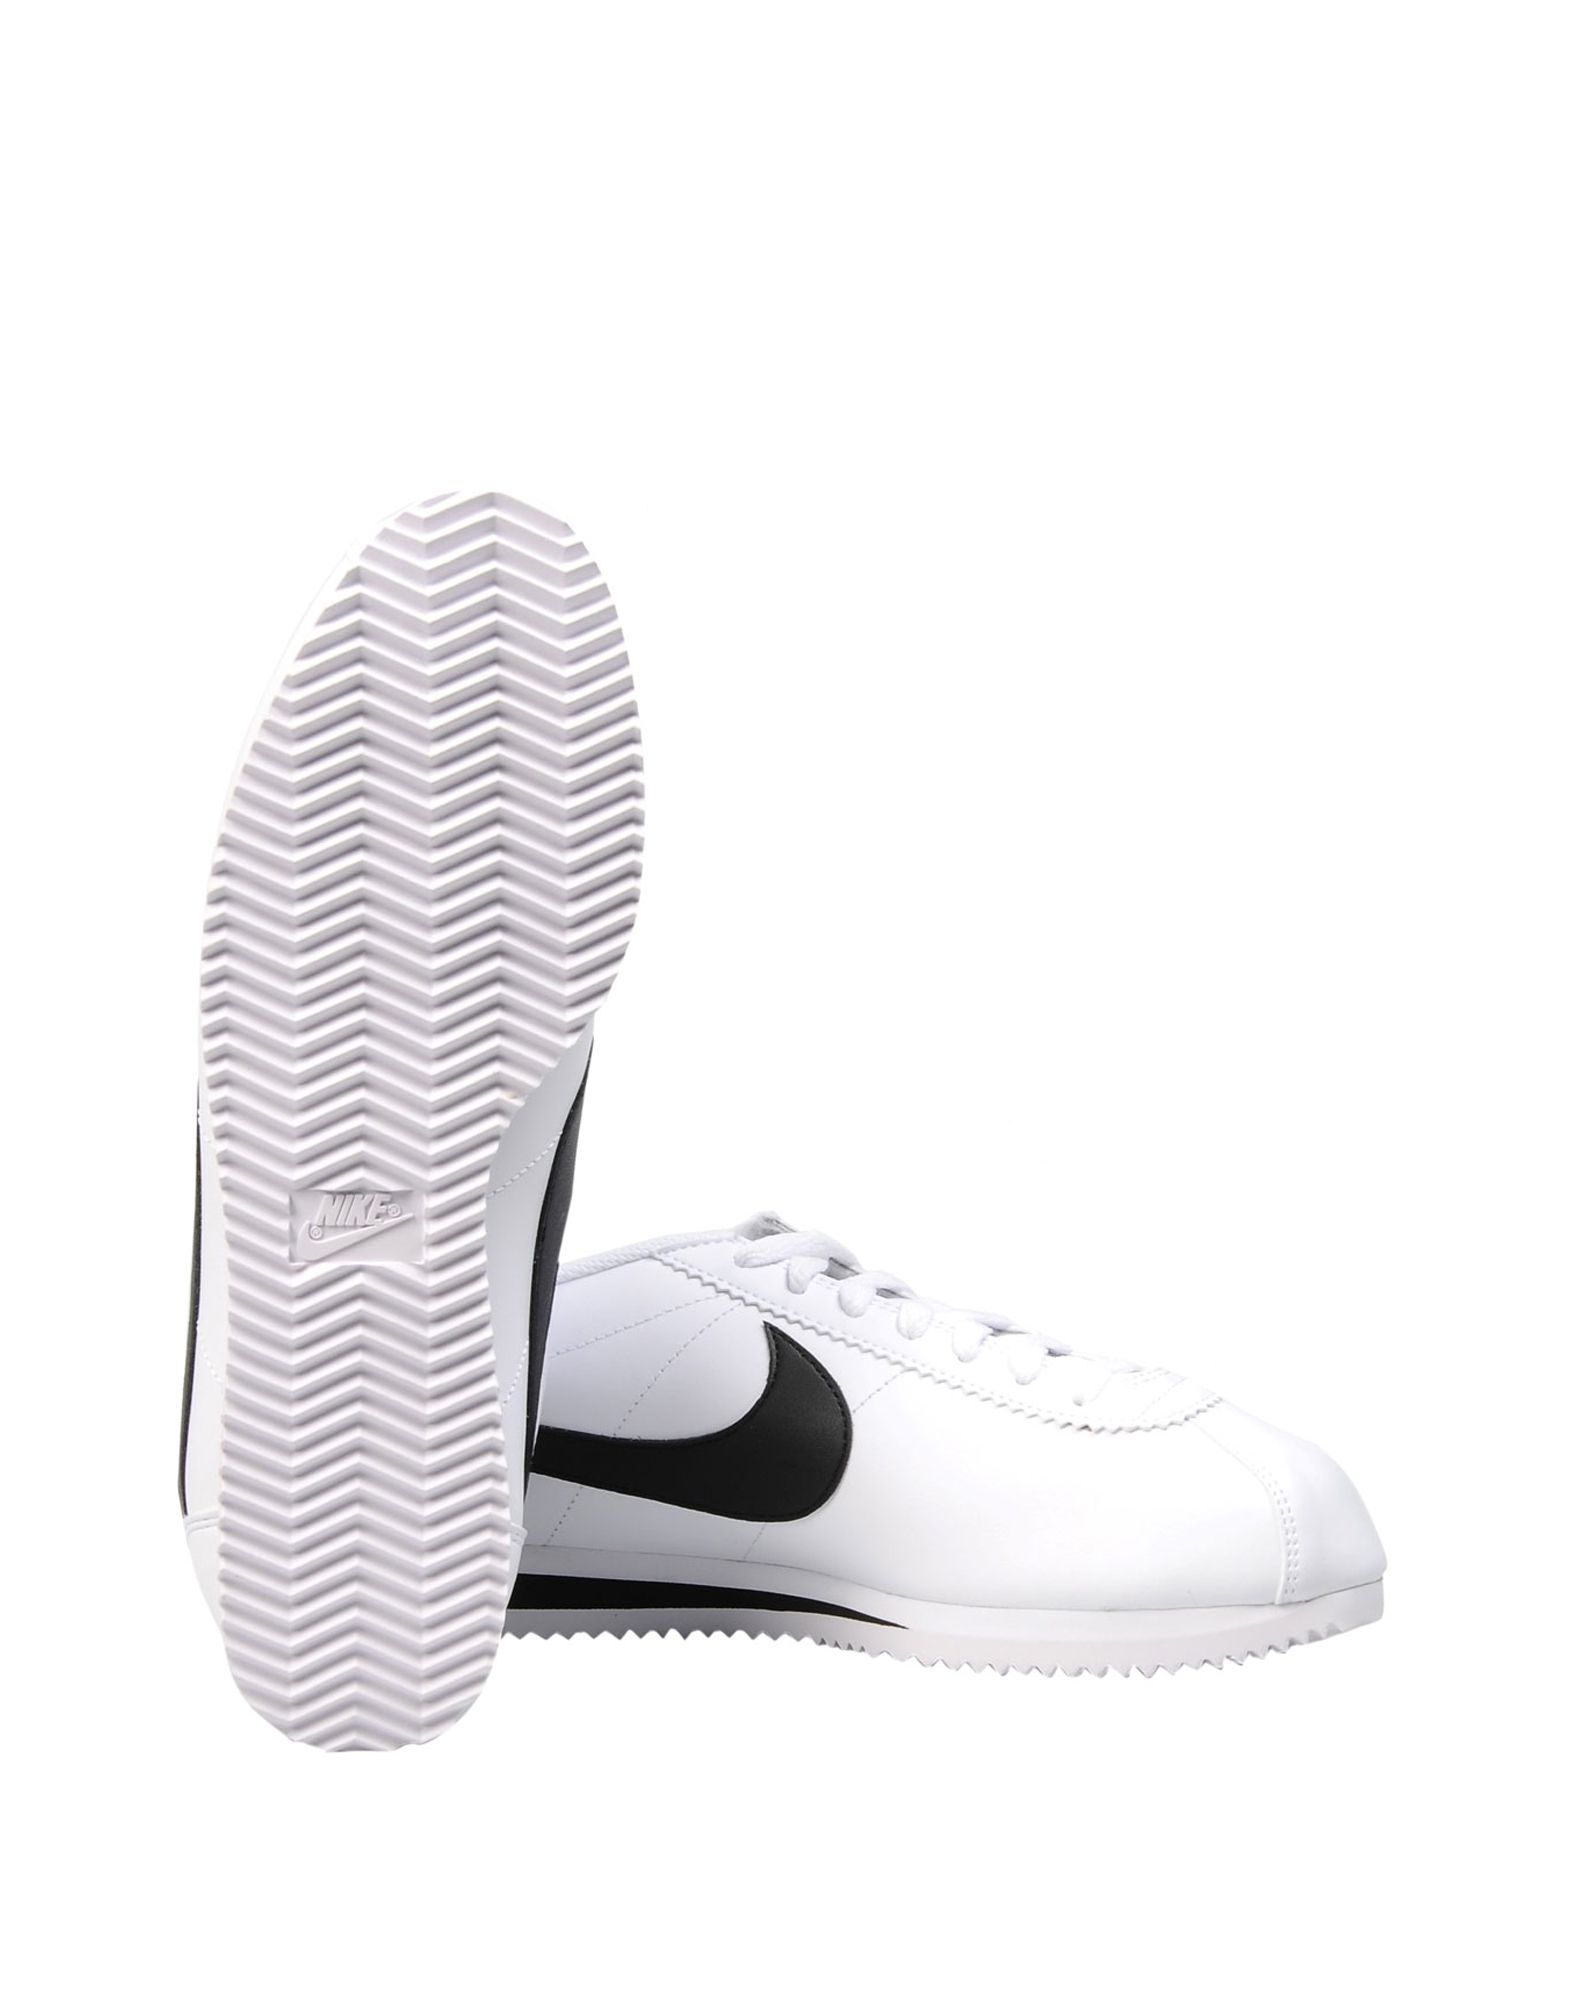 Sneakers Nike Wmns Classic Cortez Leather - Femme - Sneakers Nike sur